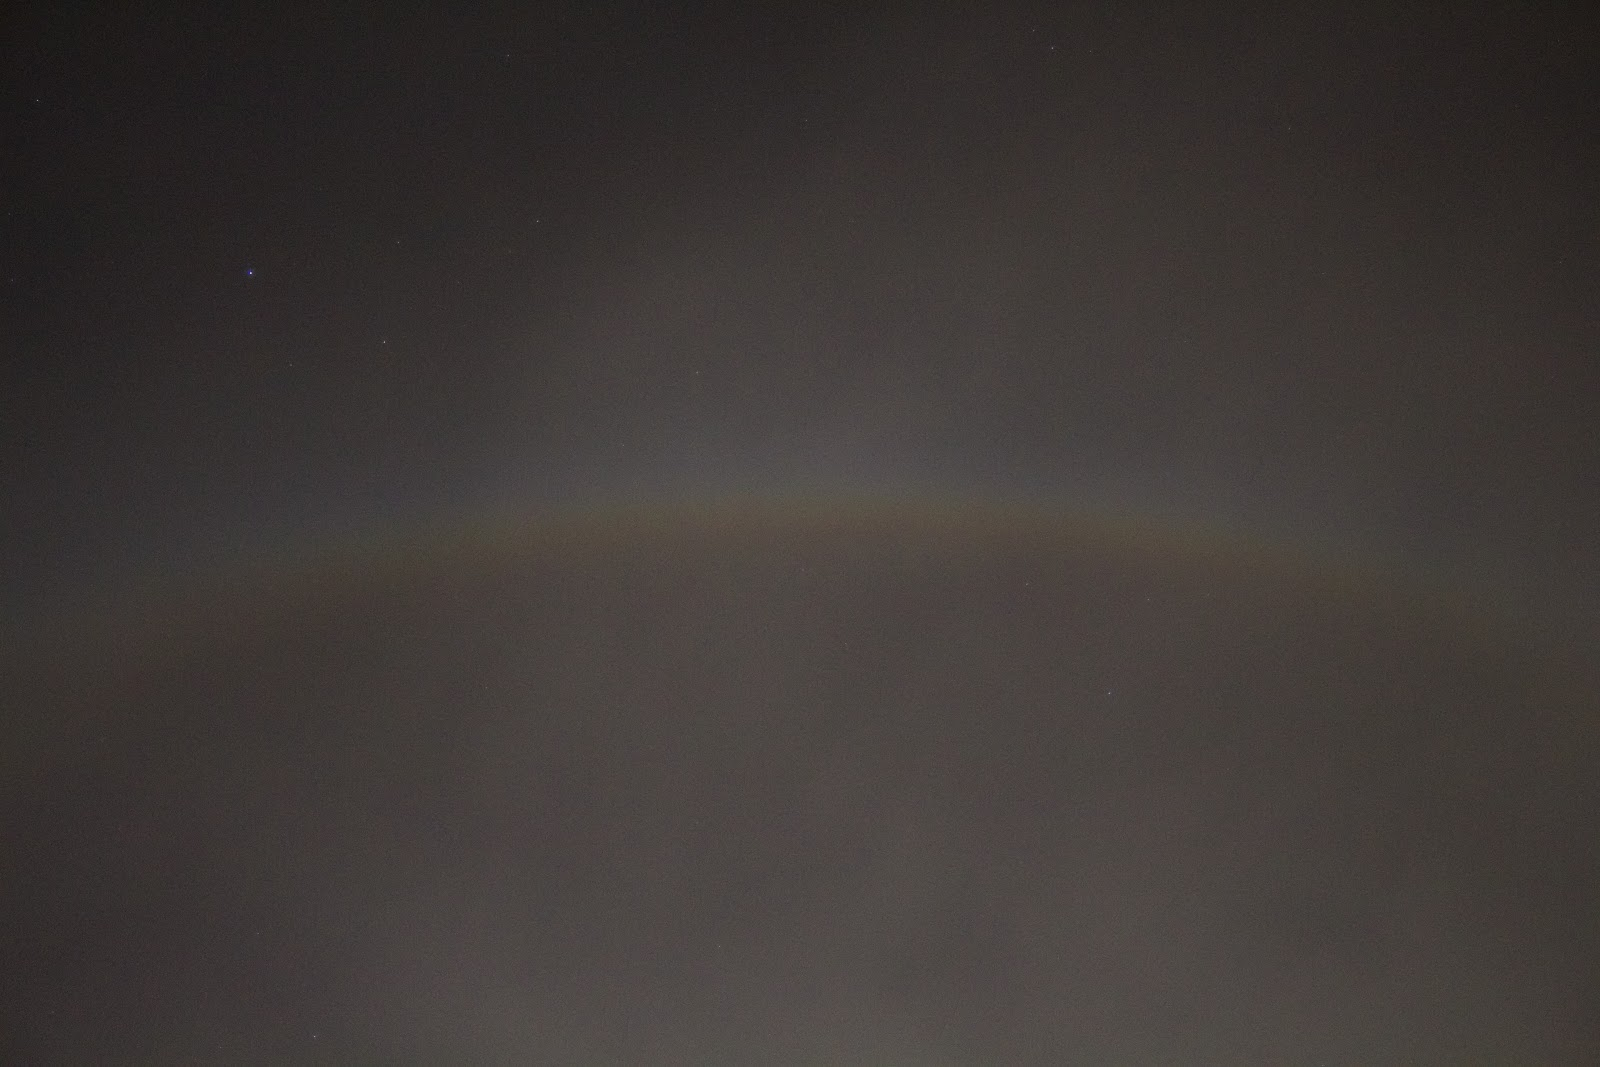 lunar halo moonbow 55mm